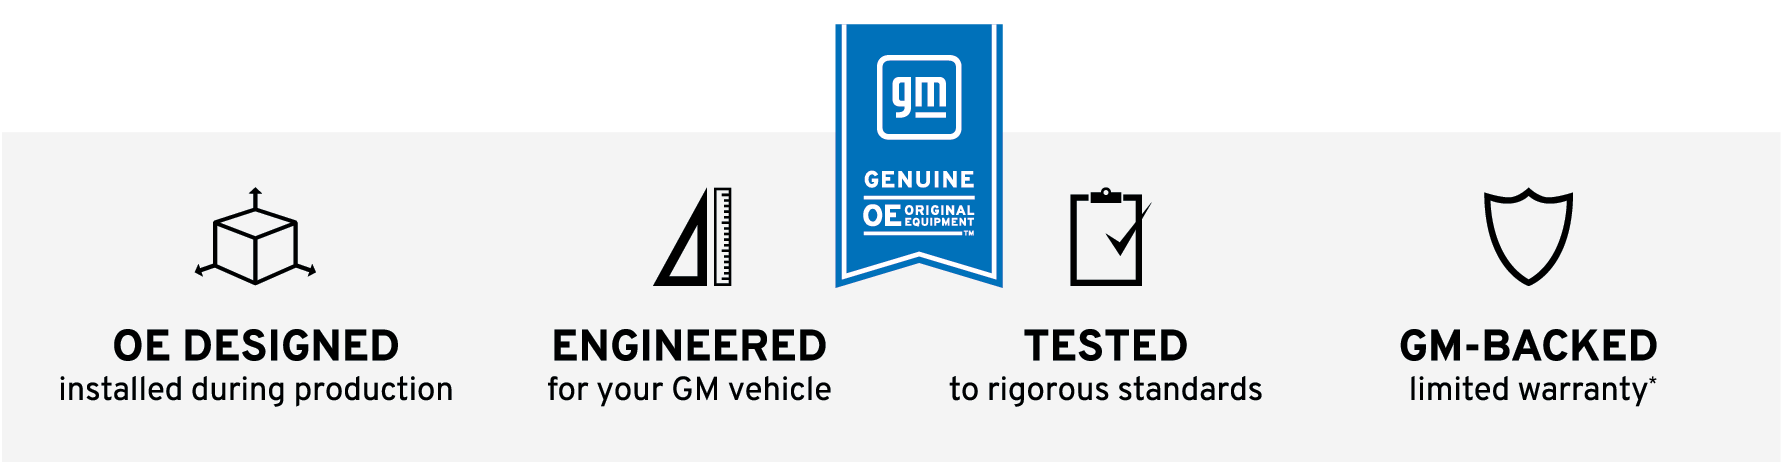 GM Genuine Parts Are OE Designed, Engineered, Tested, and GM-Backed